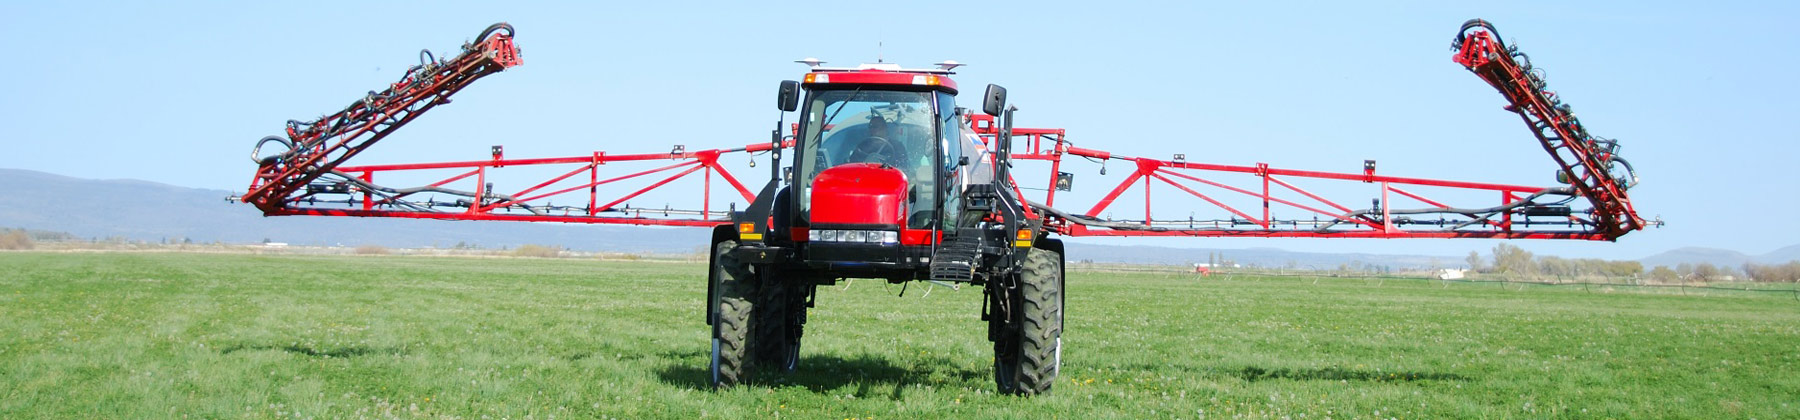 For The Best Agriculture Jobs, Choose Hansen Agri-Placement